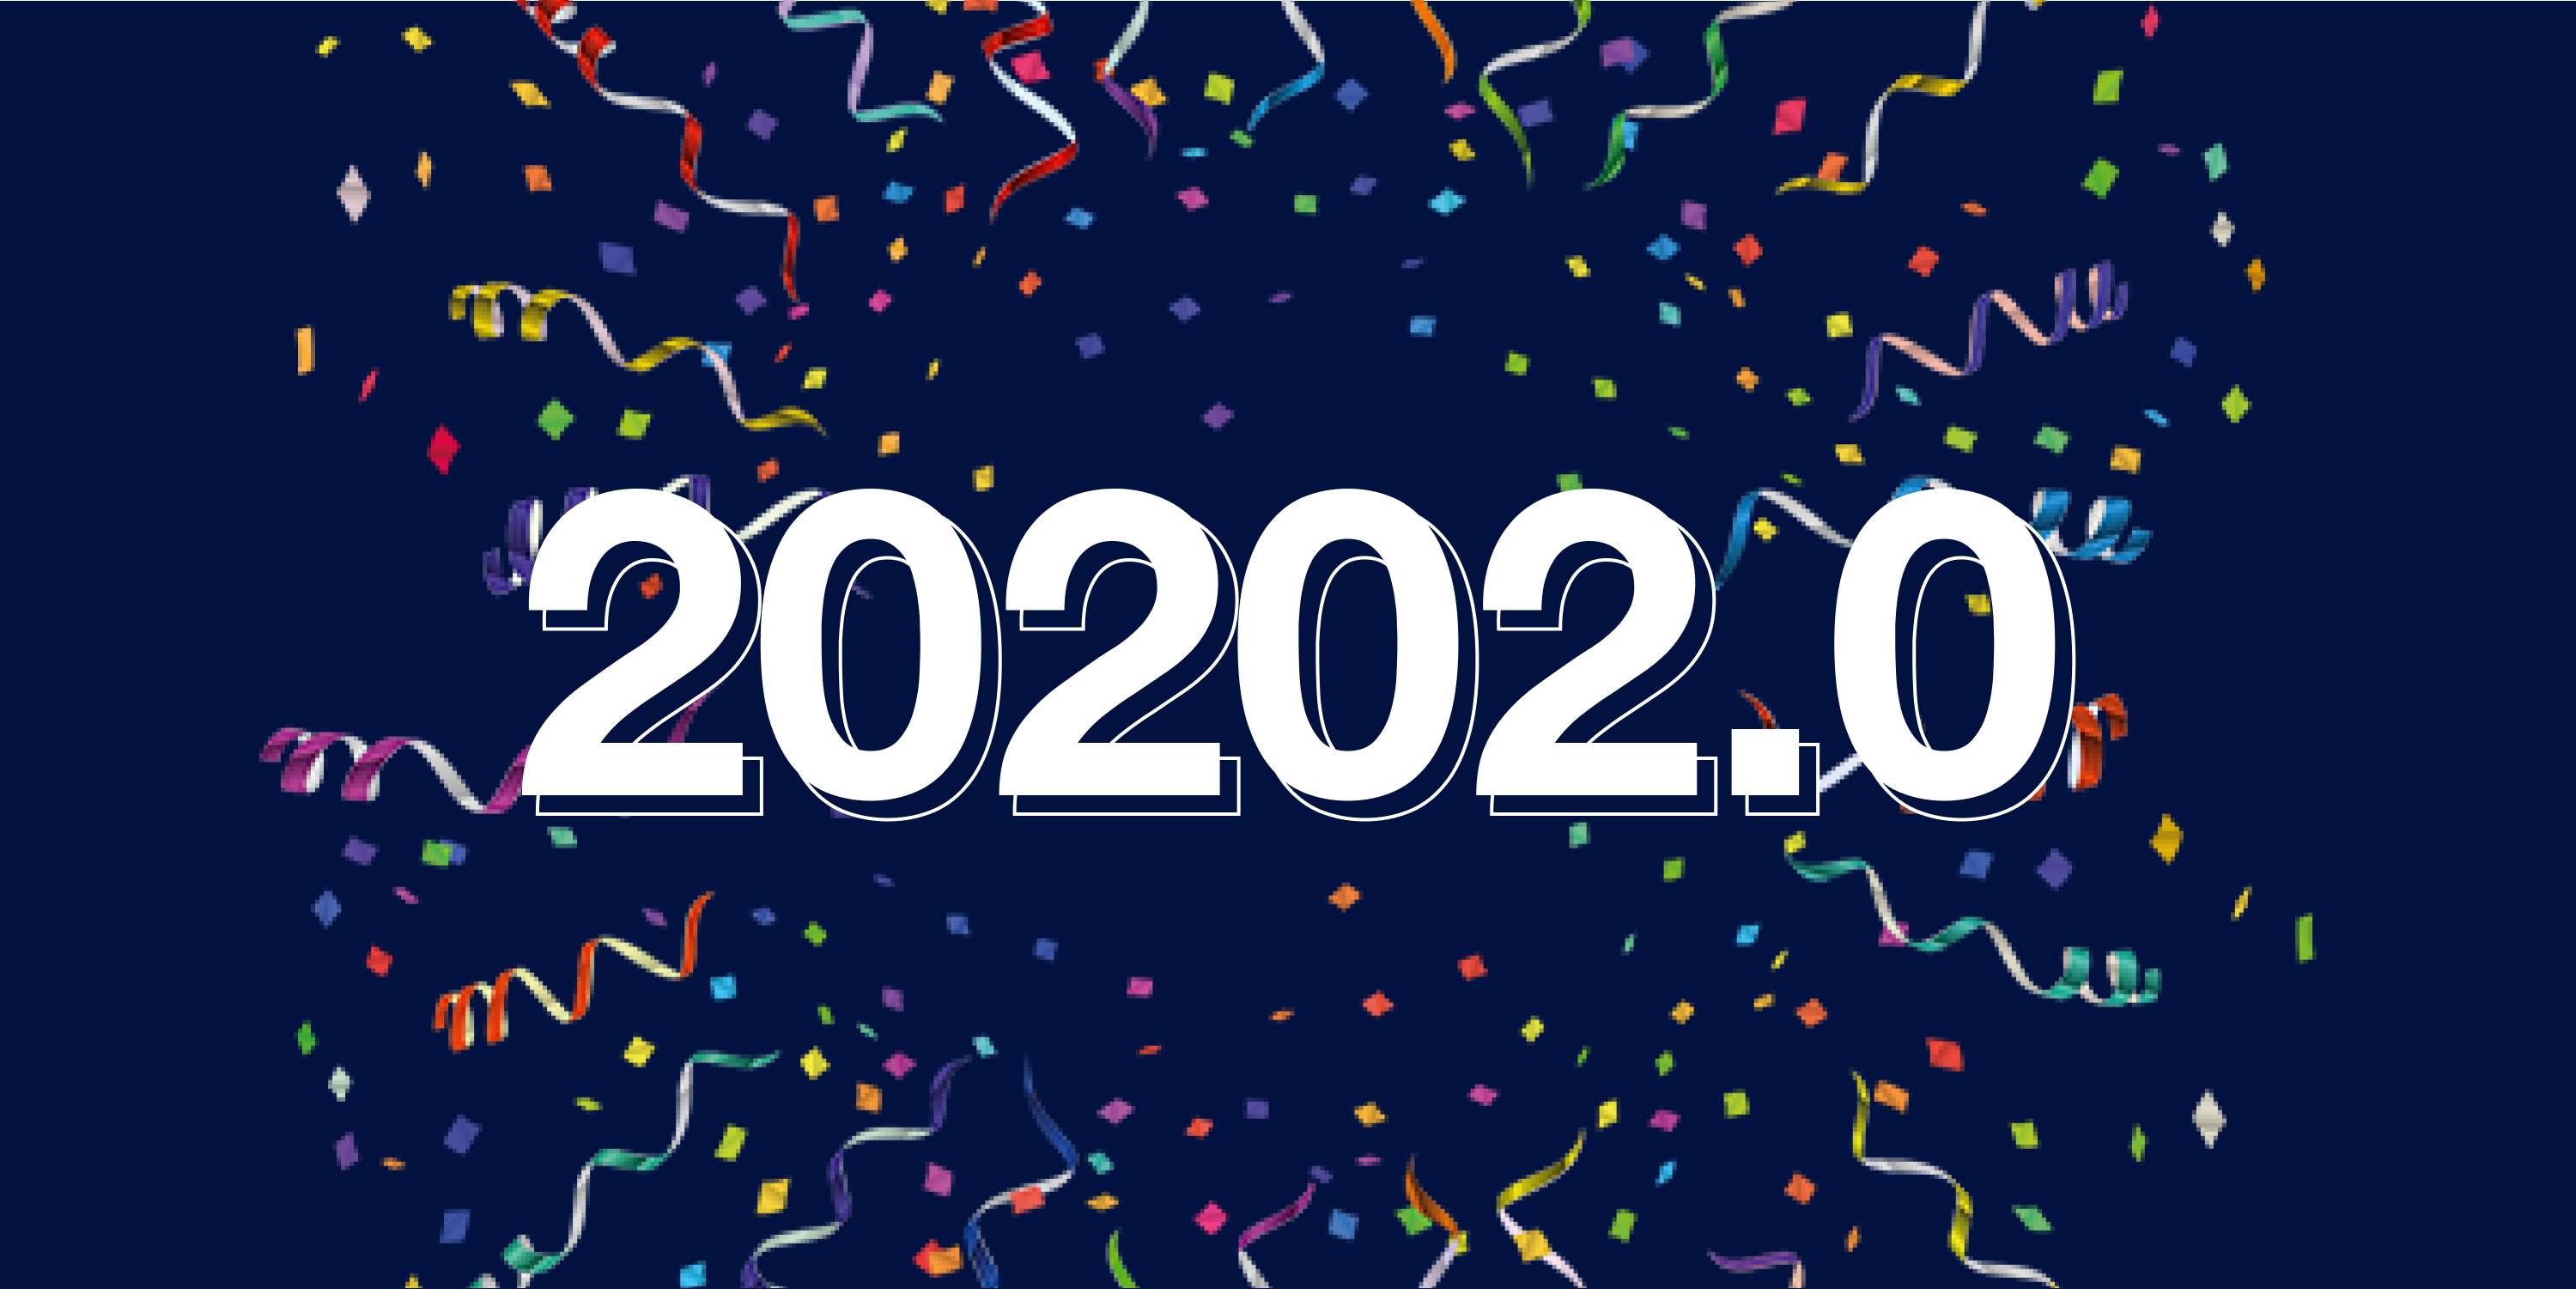 Welcome to 2020 2.0